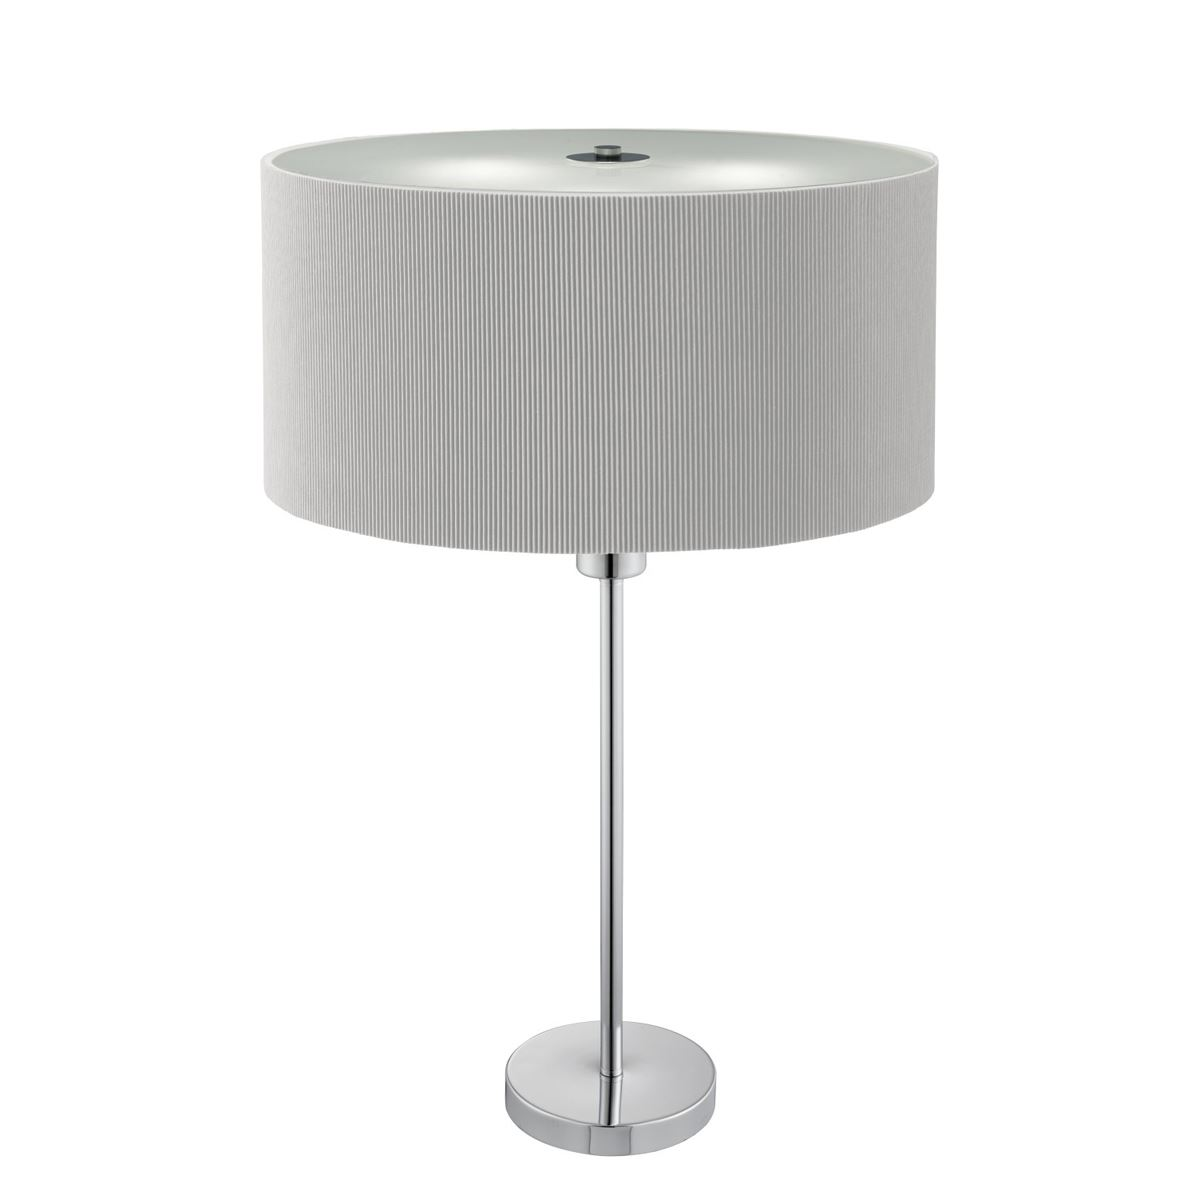 2 Light Table Lamp Frosted Glass Diffuser Silver Pleated Shade